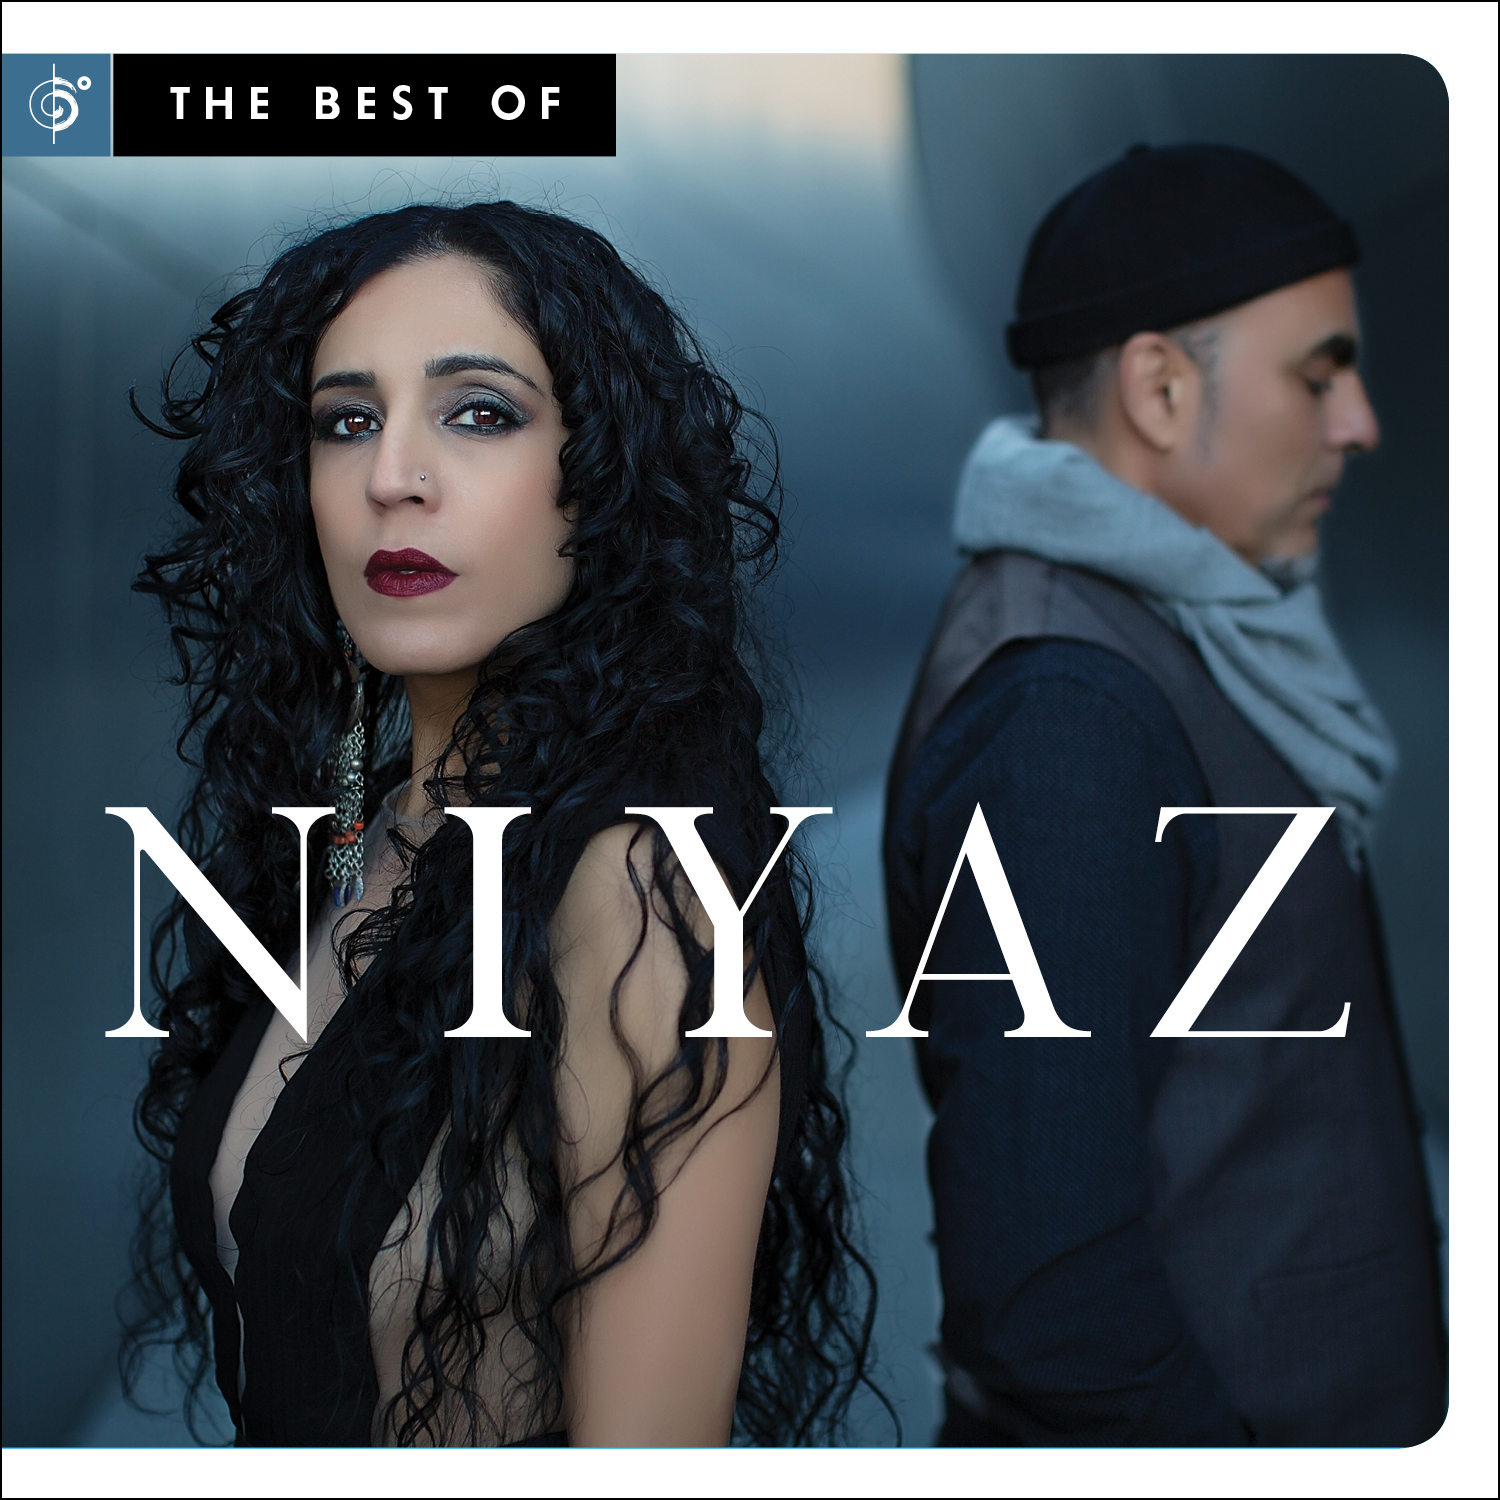 Coming soon: The best of niyaz